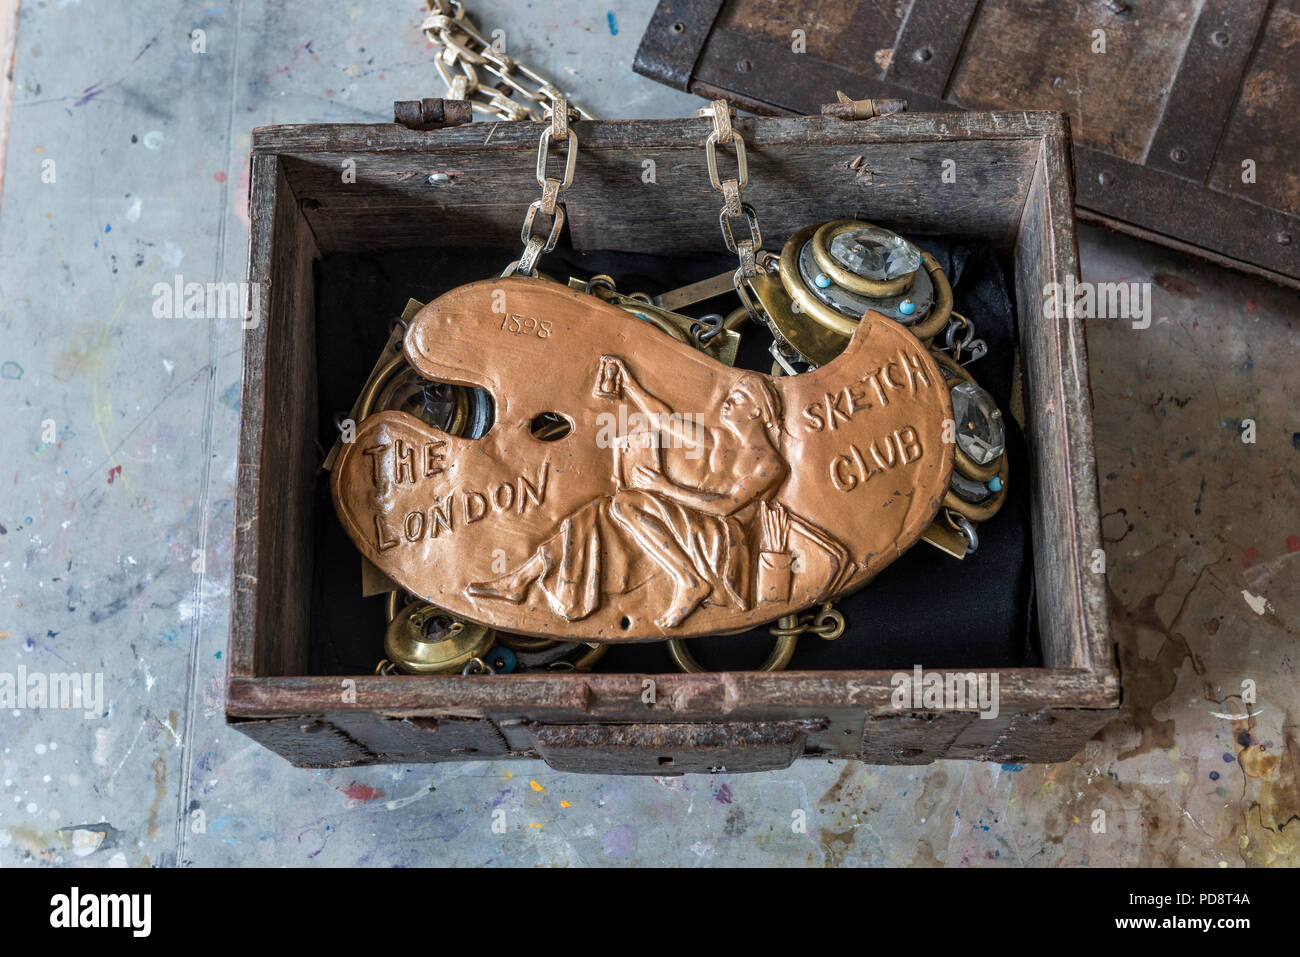 An old box of regalia containing a copper palette and an officers chain made from plumbing scraps and door knobs - Stock Image